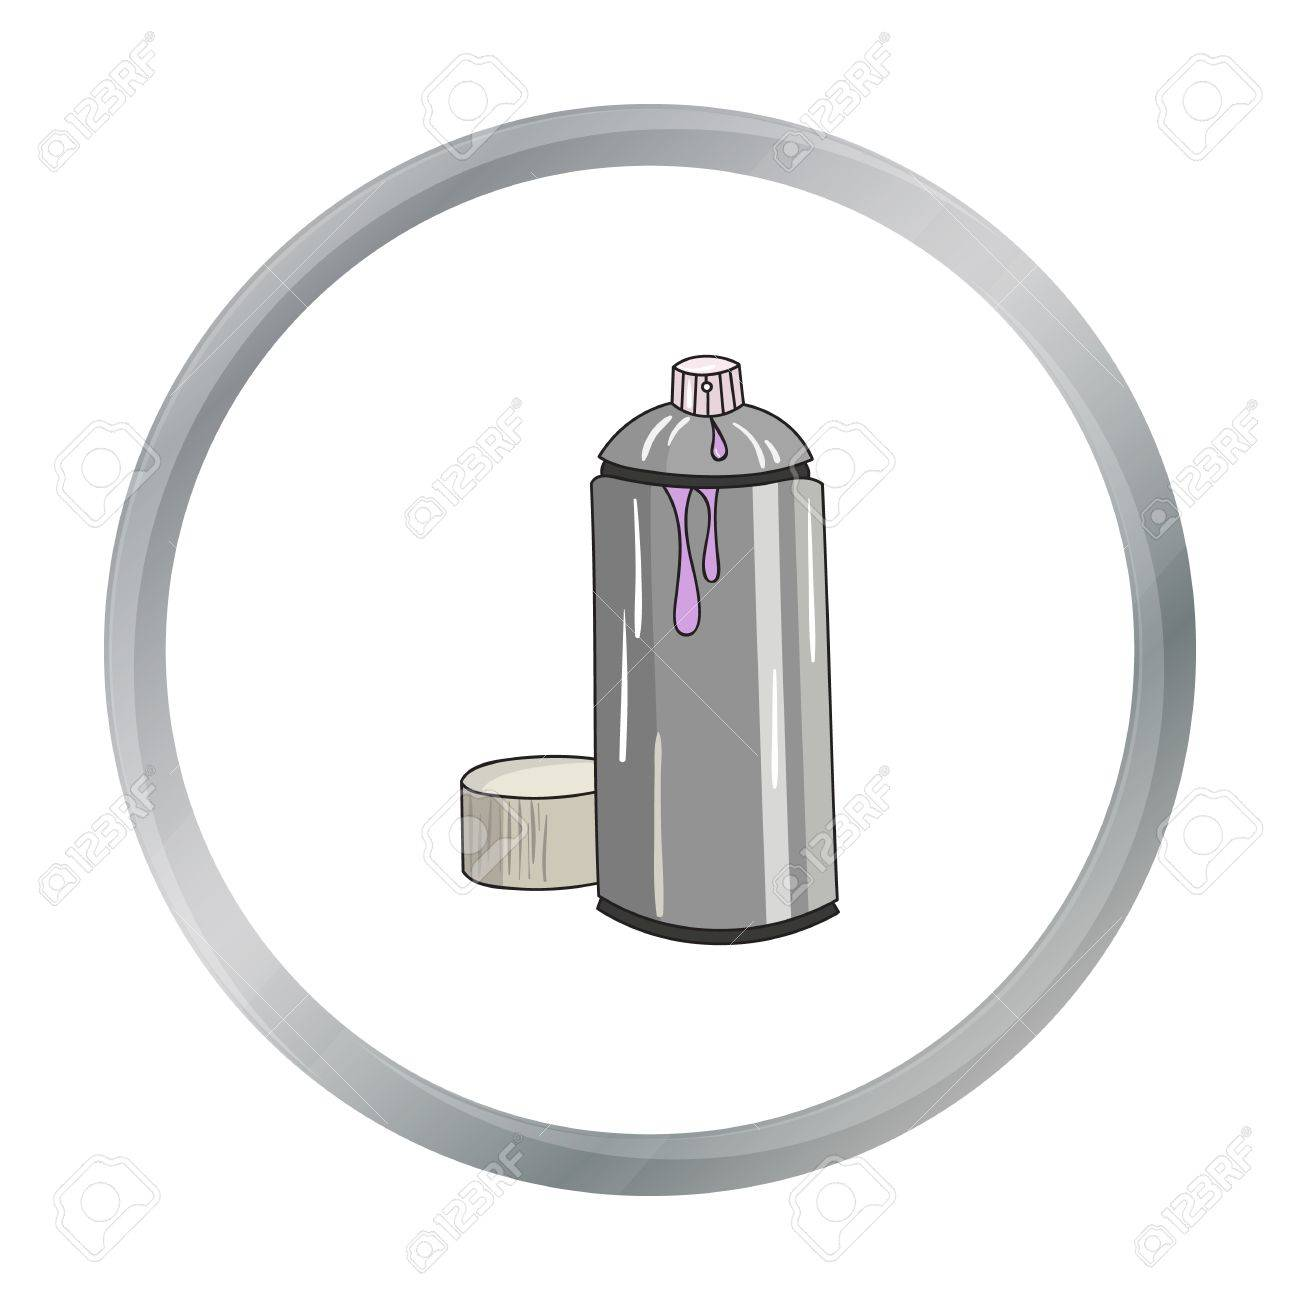 Spray paint can icon in cartoon style isolated on white background